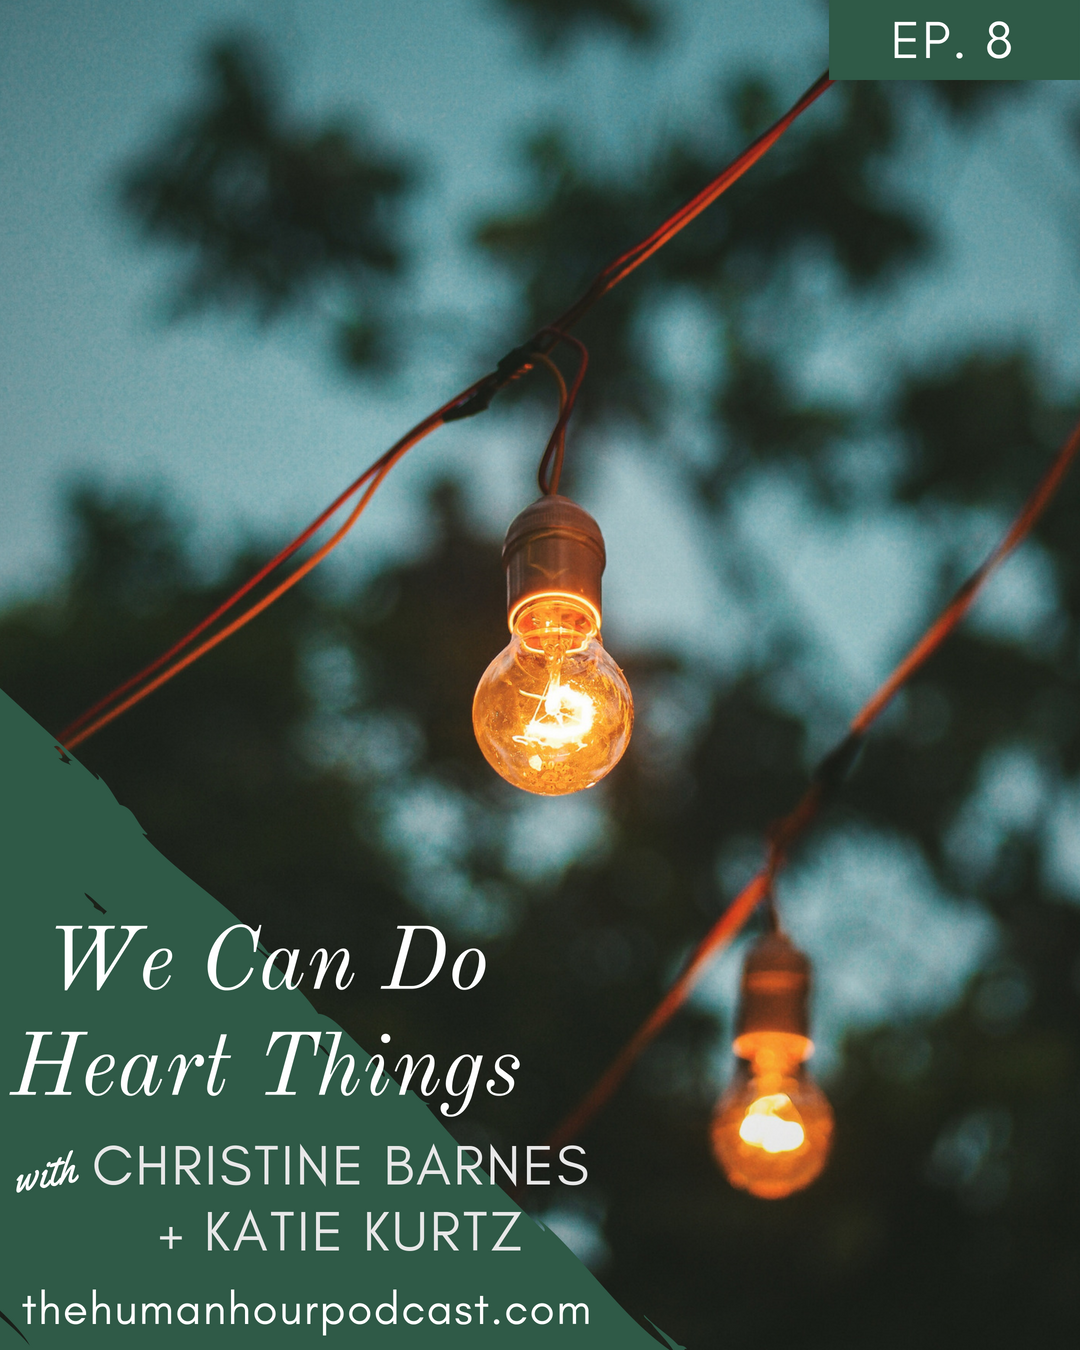 S1 E8: We Can Do Heart Things